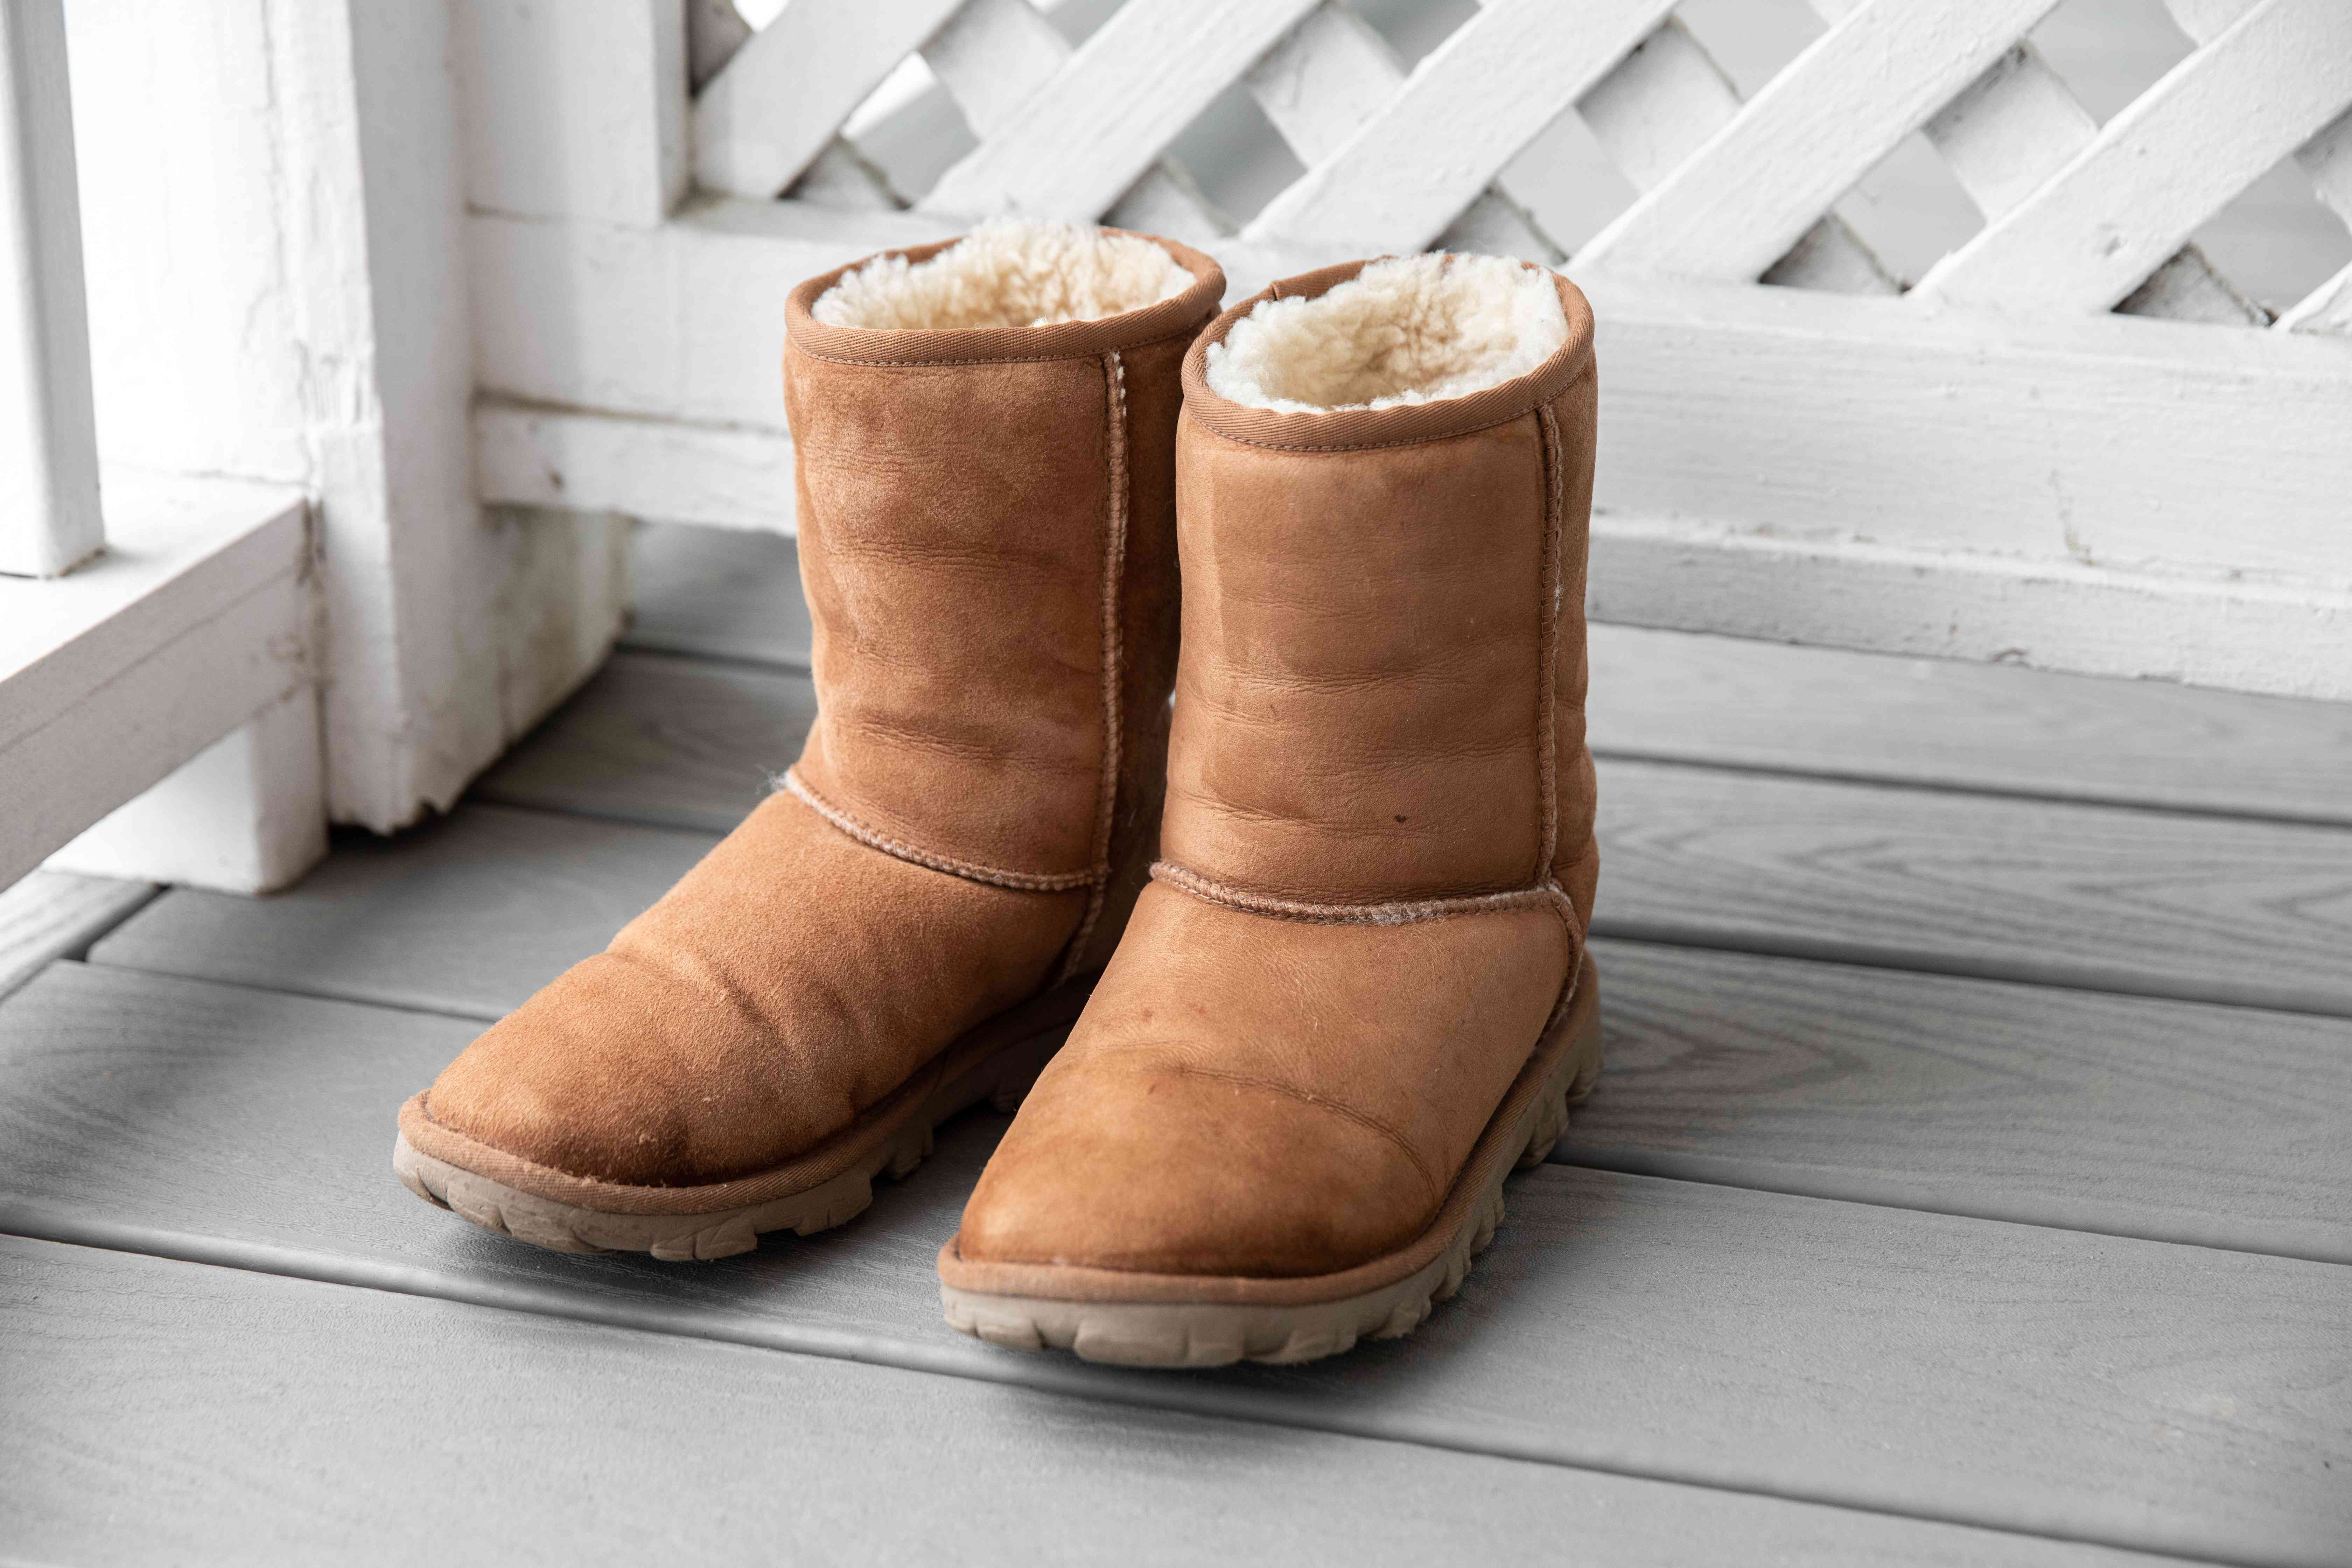 Ugg boots air drying